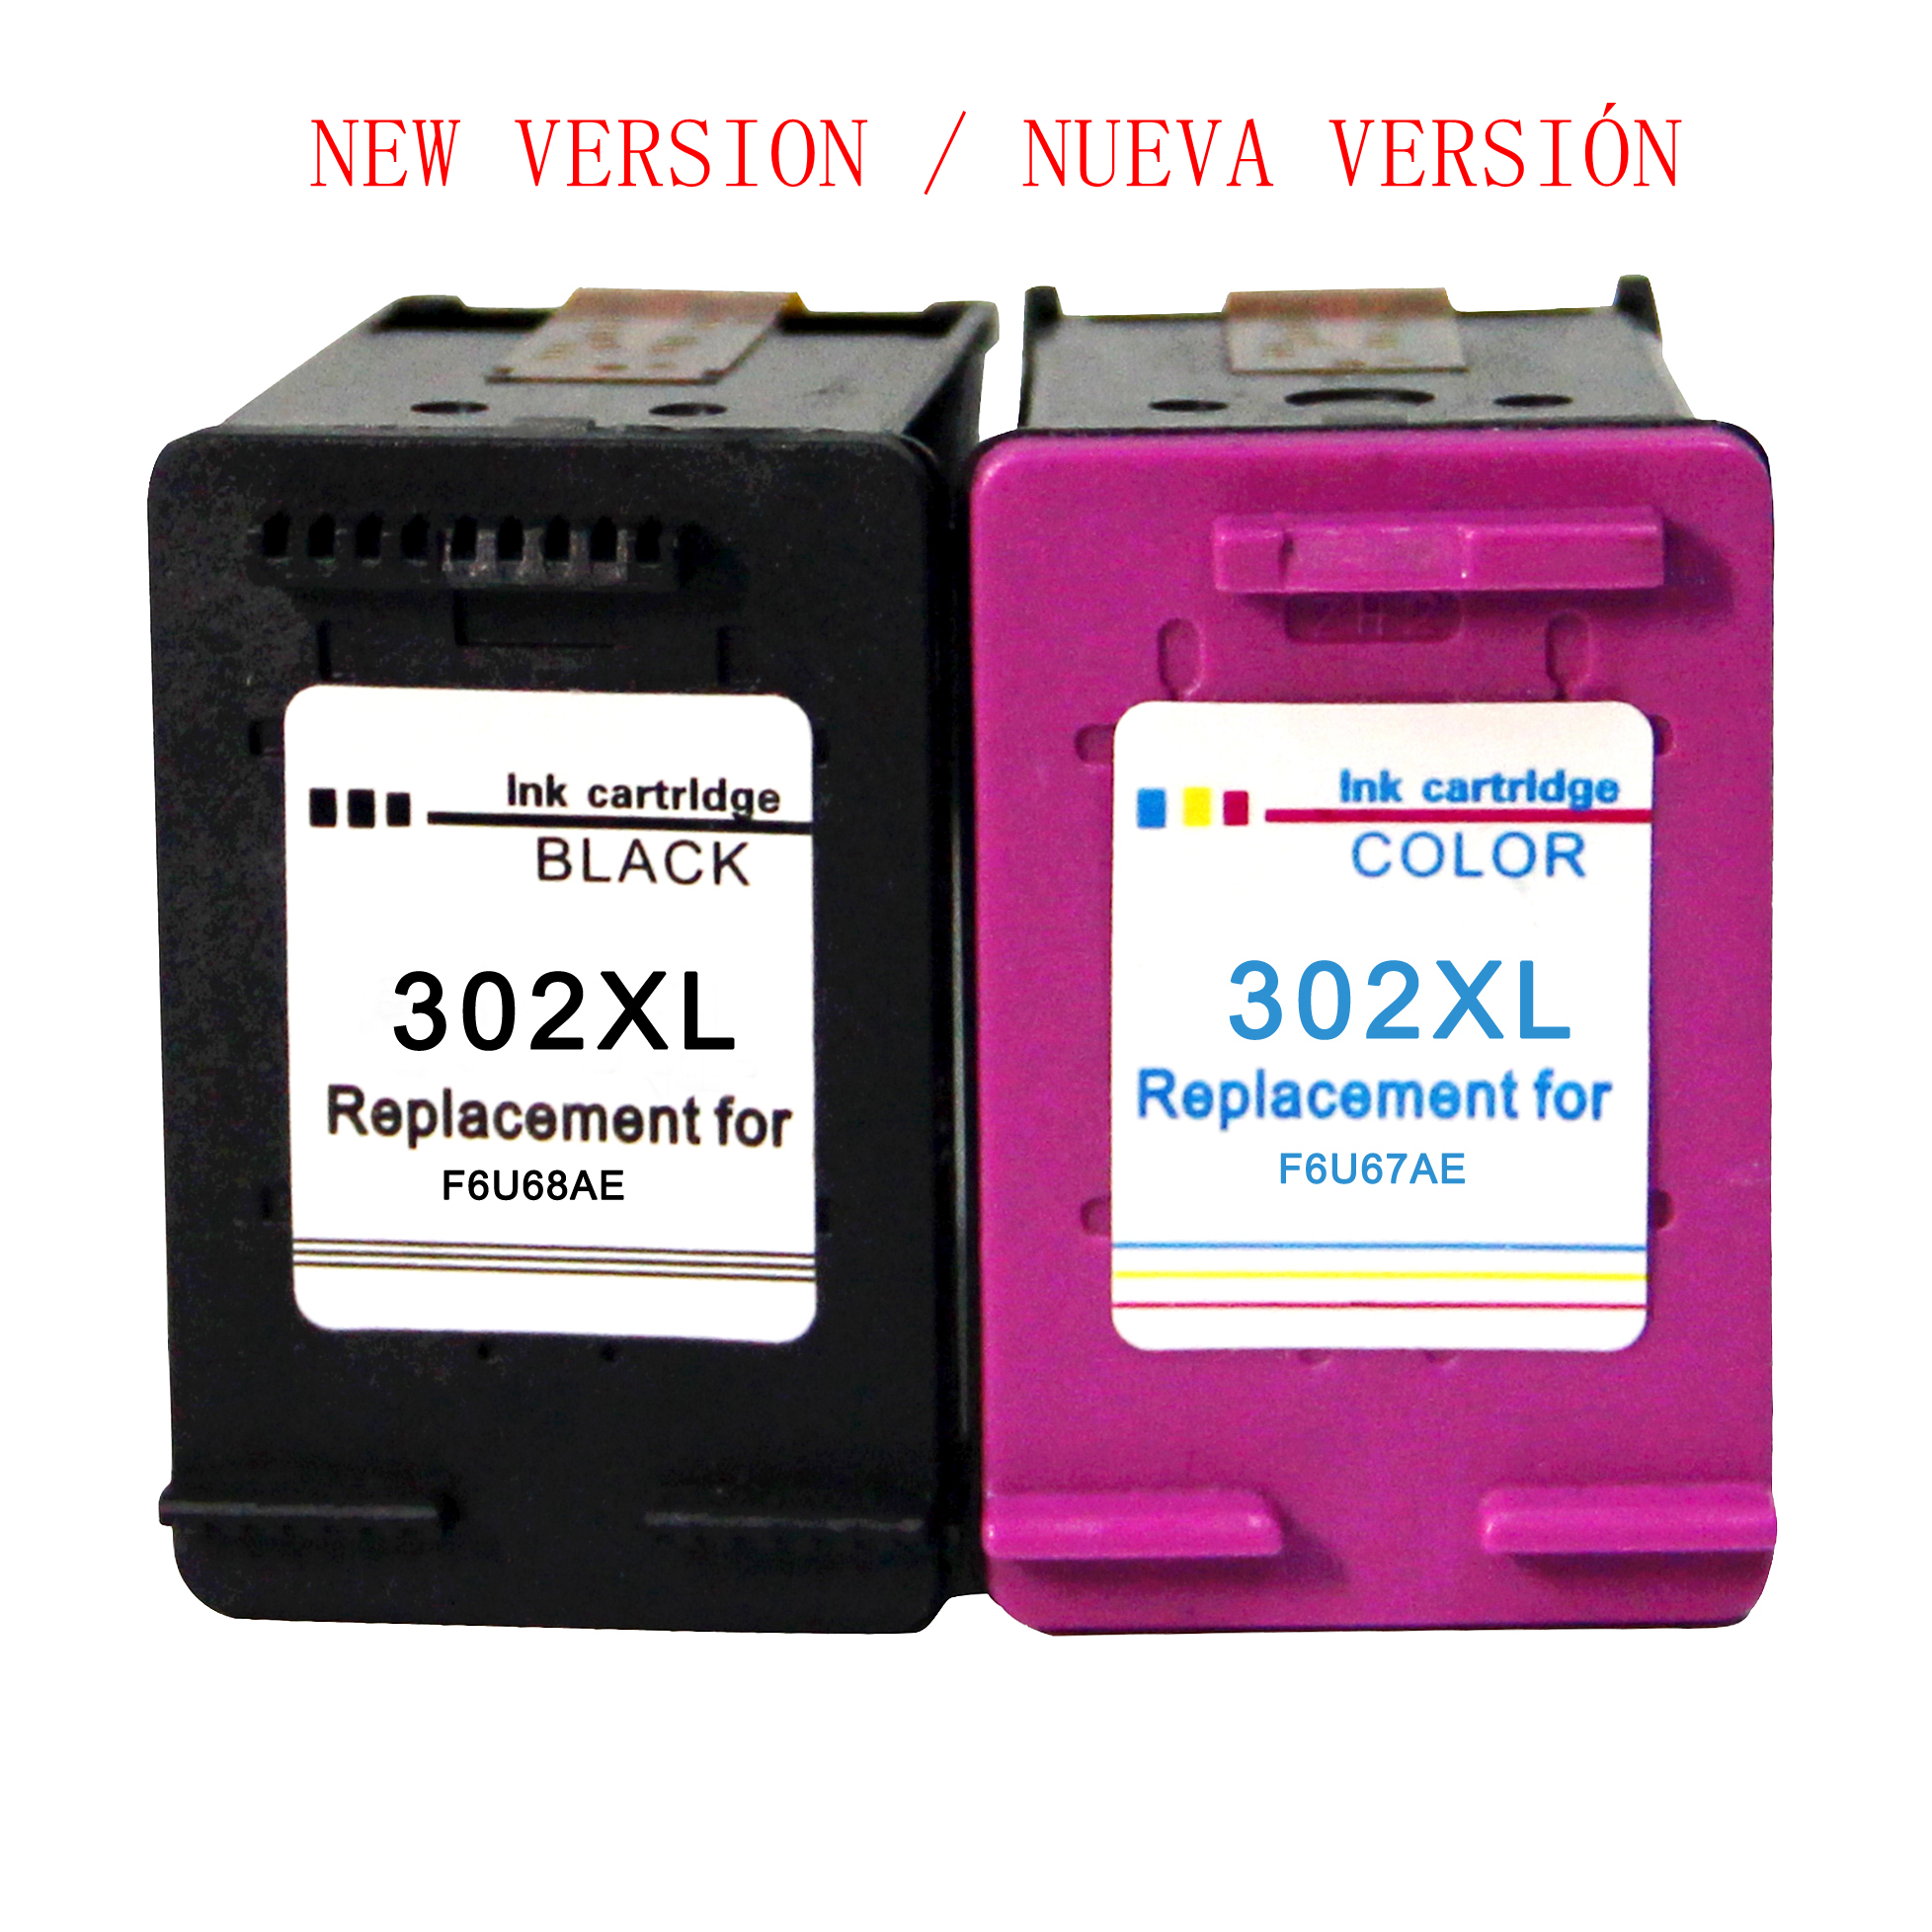 Compatible 302XL Ink Cartridges For HP 302 For HP OfficeJet 5220 5222 5230 5232 3831 3833 Envy 4520 4524 DeskJet 3639